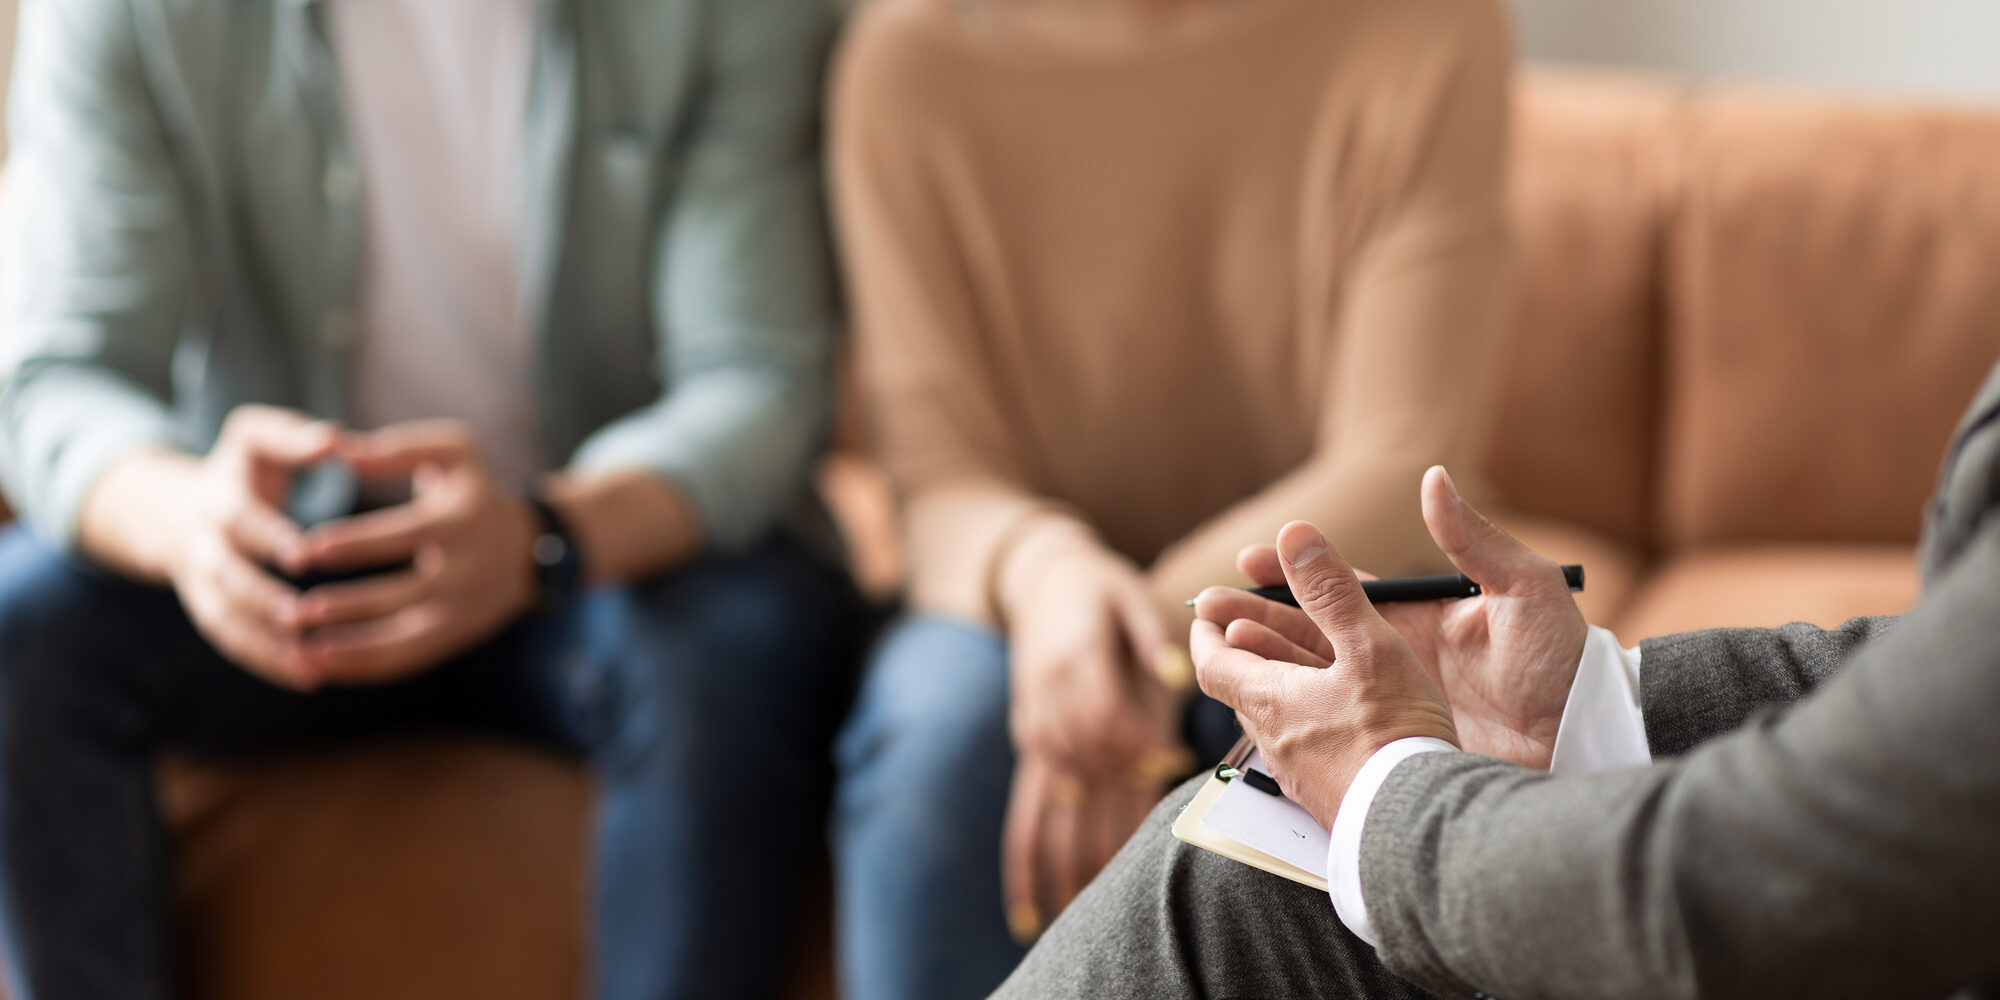 Help Concept. Closeup Cropped View Of Male Counselor Therapist Or Consultant In Suit Talking With Couple Sitting In Office, Giving Professional Advice. Selective Focus On Hands With Clipboard And Pen